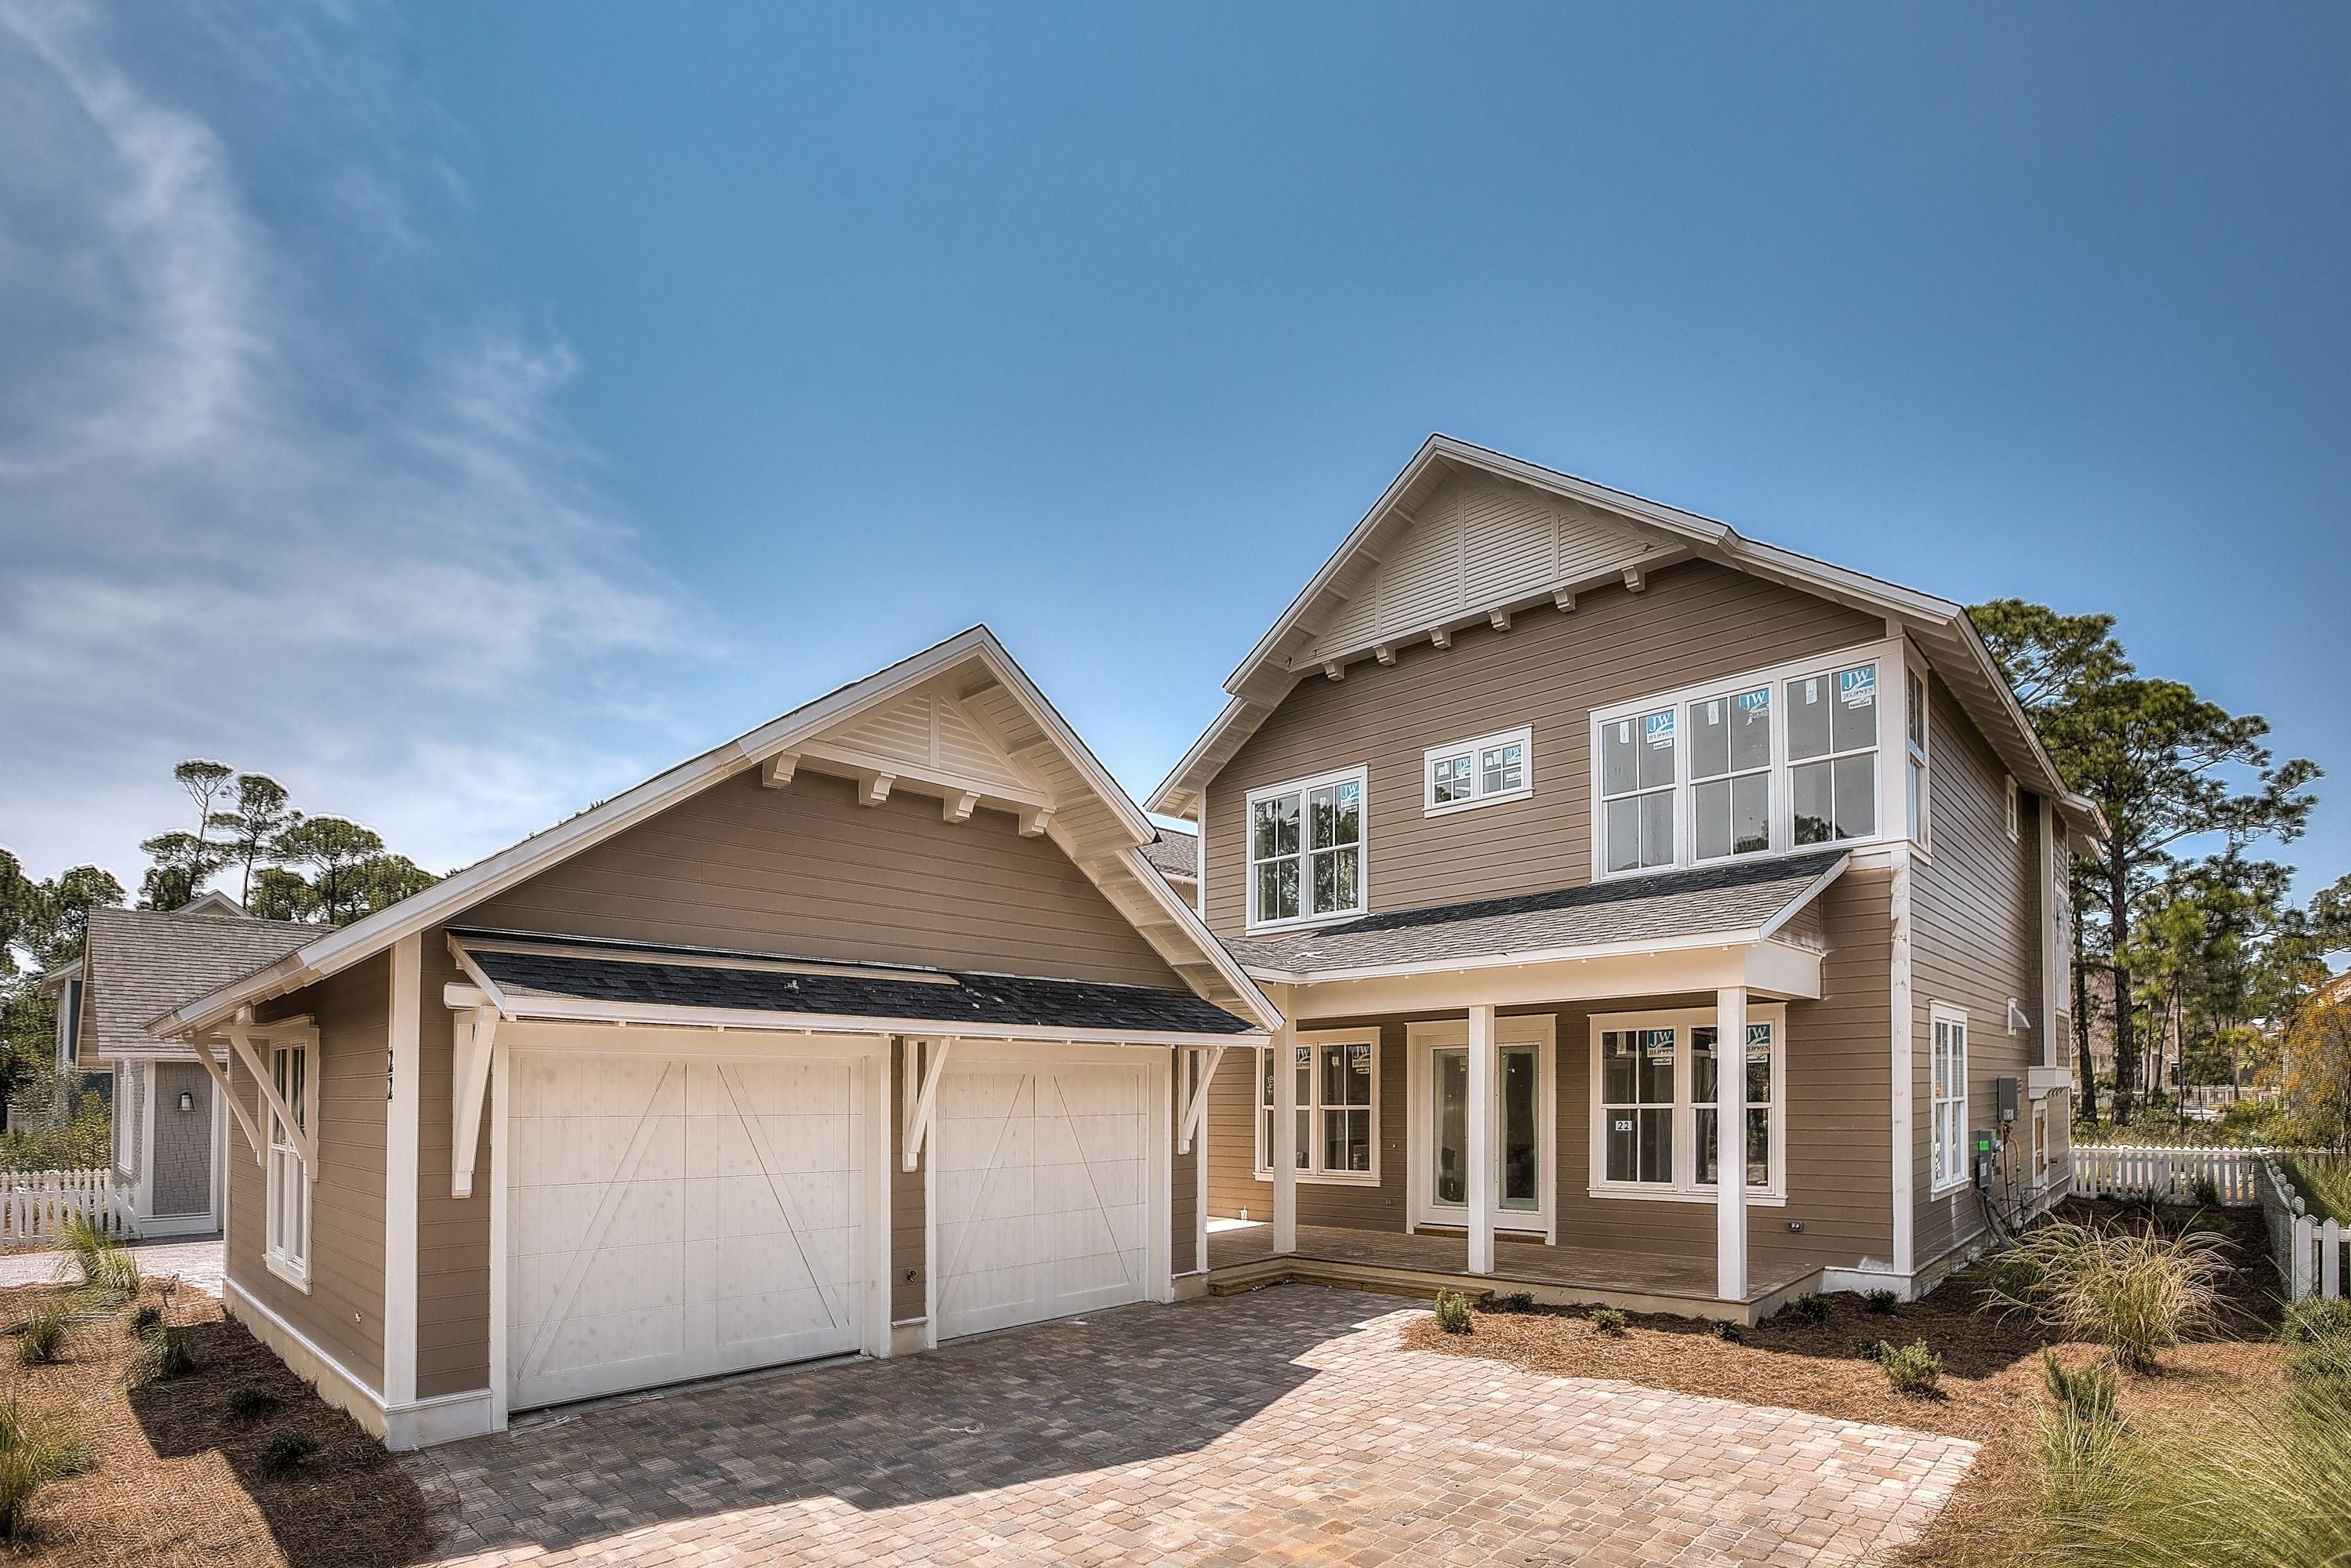 Our Brand New Watersound West Beach Model Home By Boswell